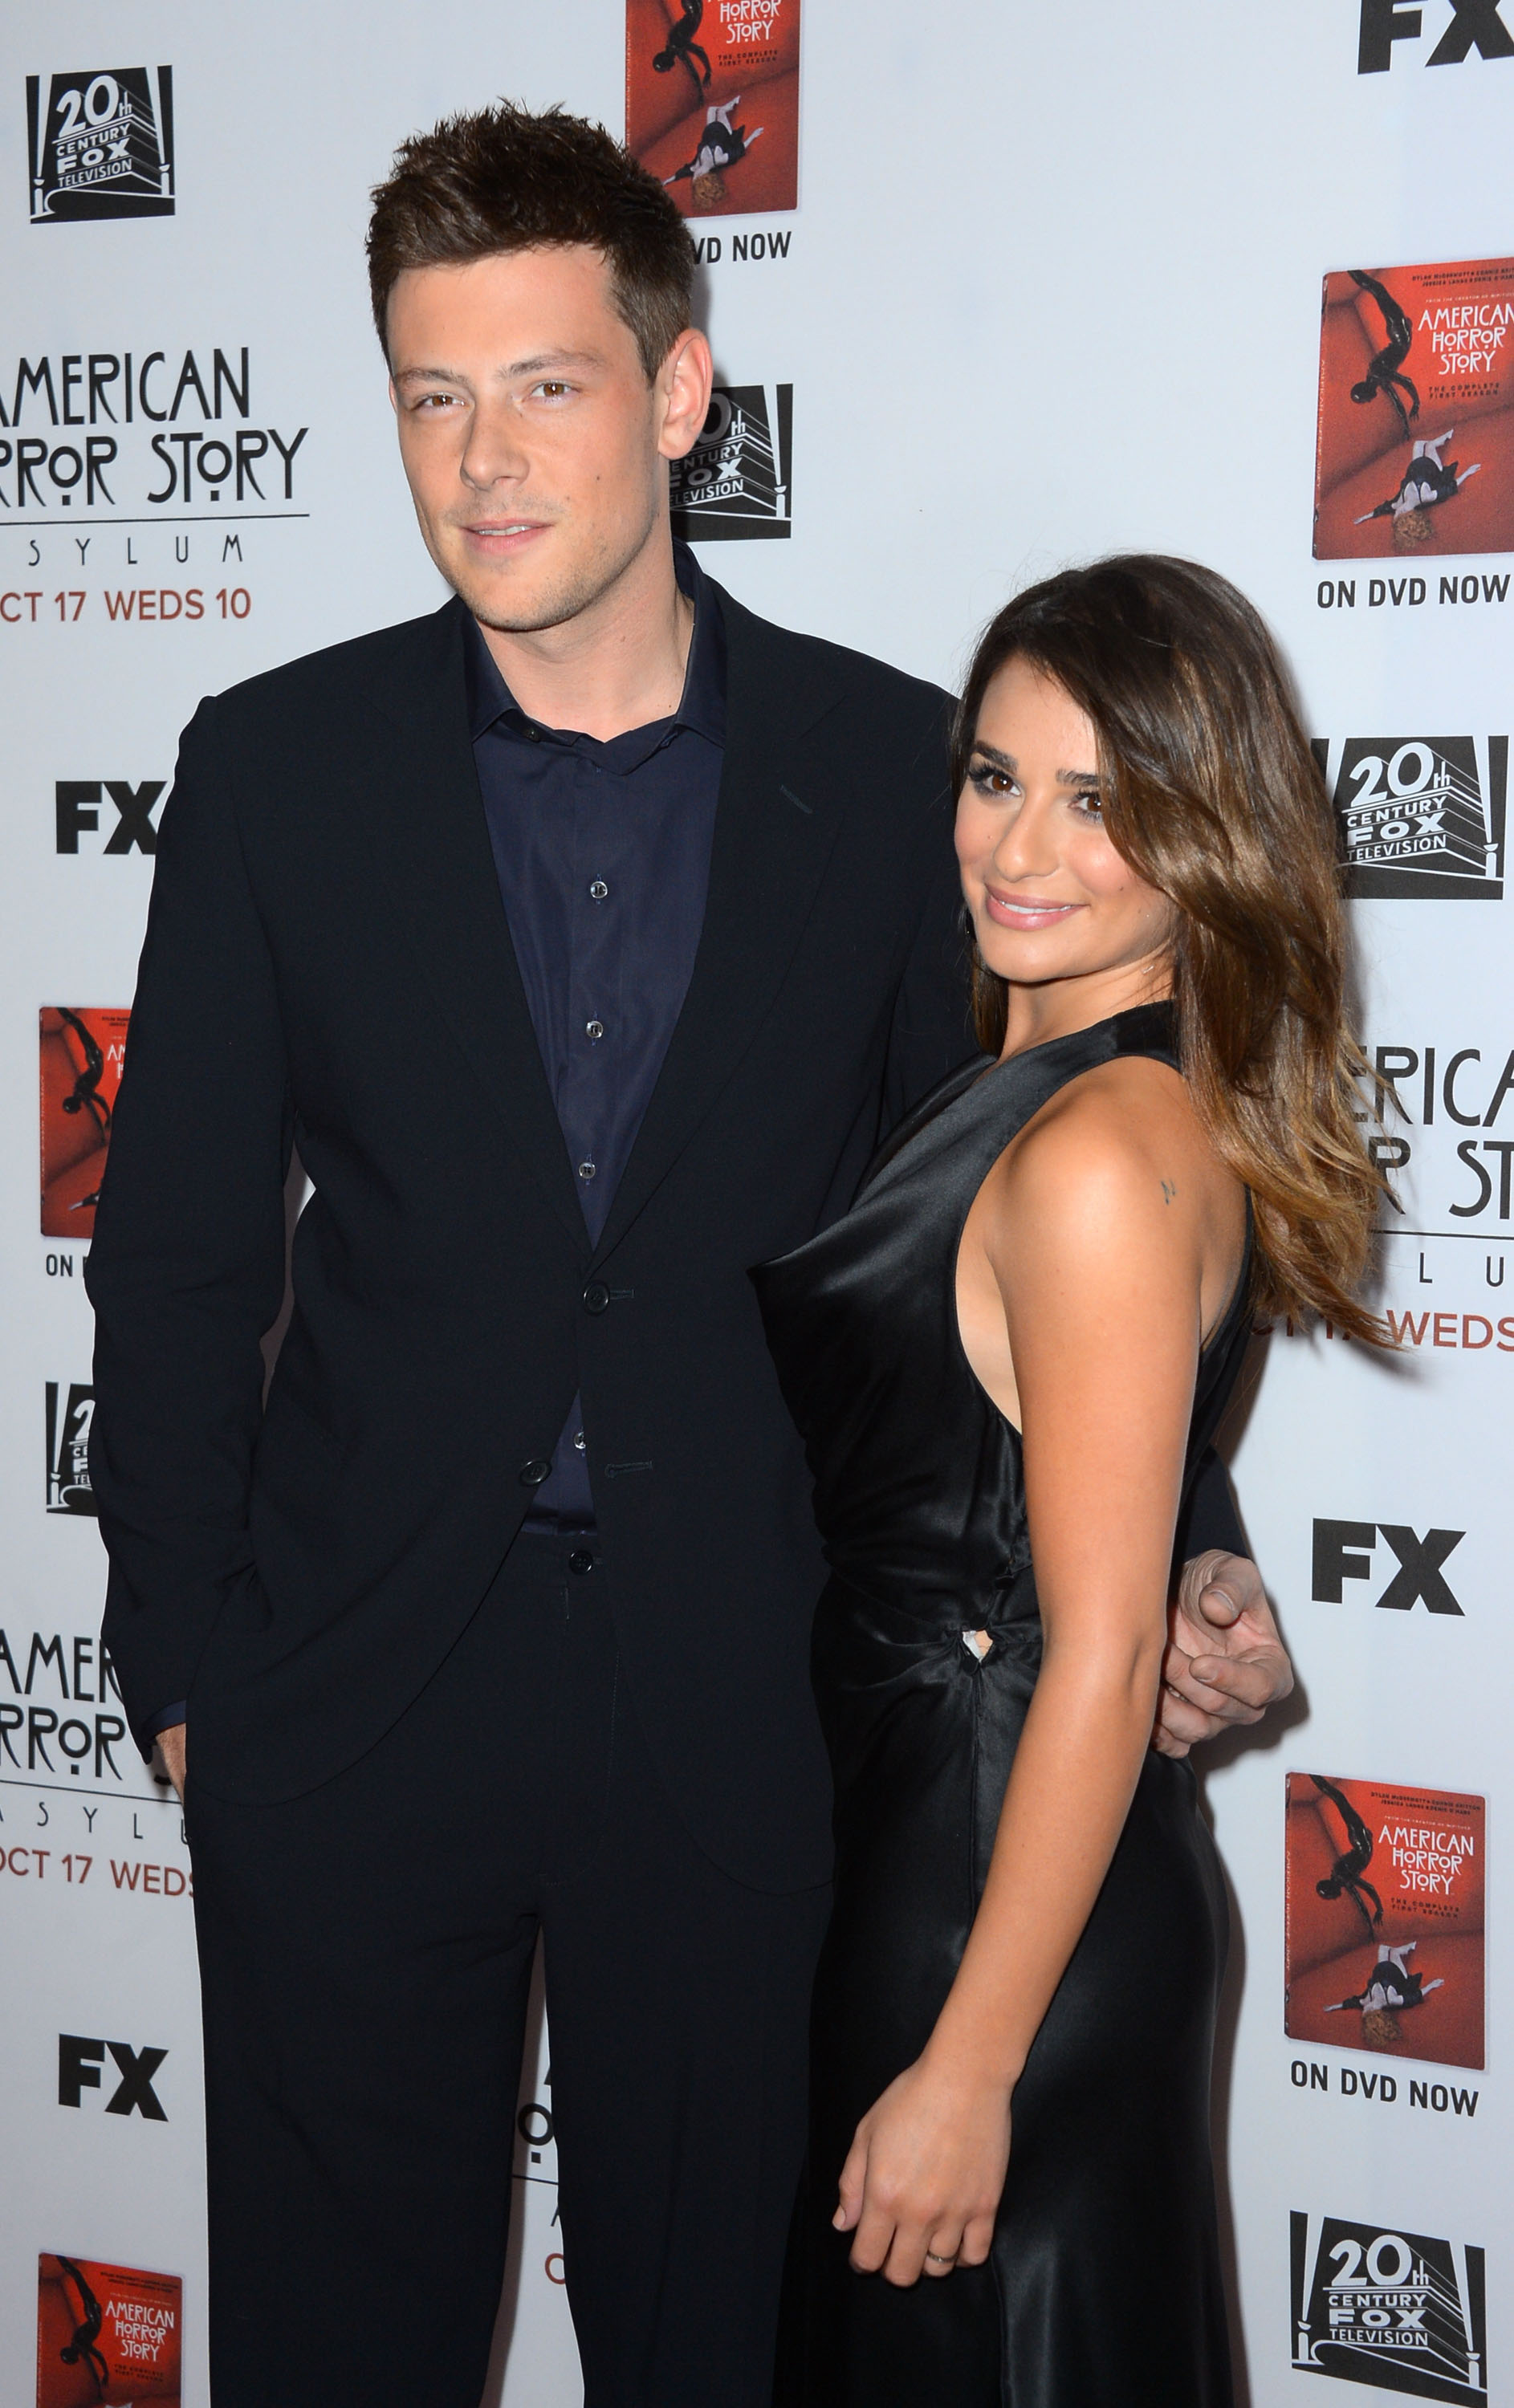 Actors Cory Monteith and actress Lea Michele arrive at the Premiere Screening of FX's 'American Horror Story: Asylum' at the Paramount Theatre on October 13, 2012 in Hollywood, California.